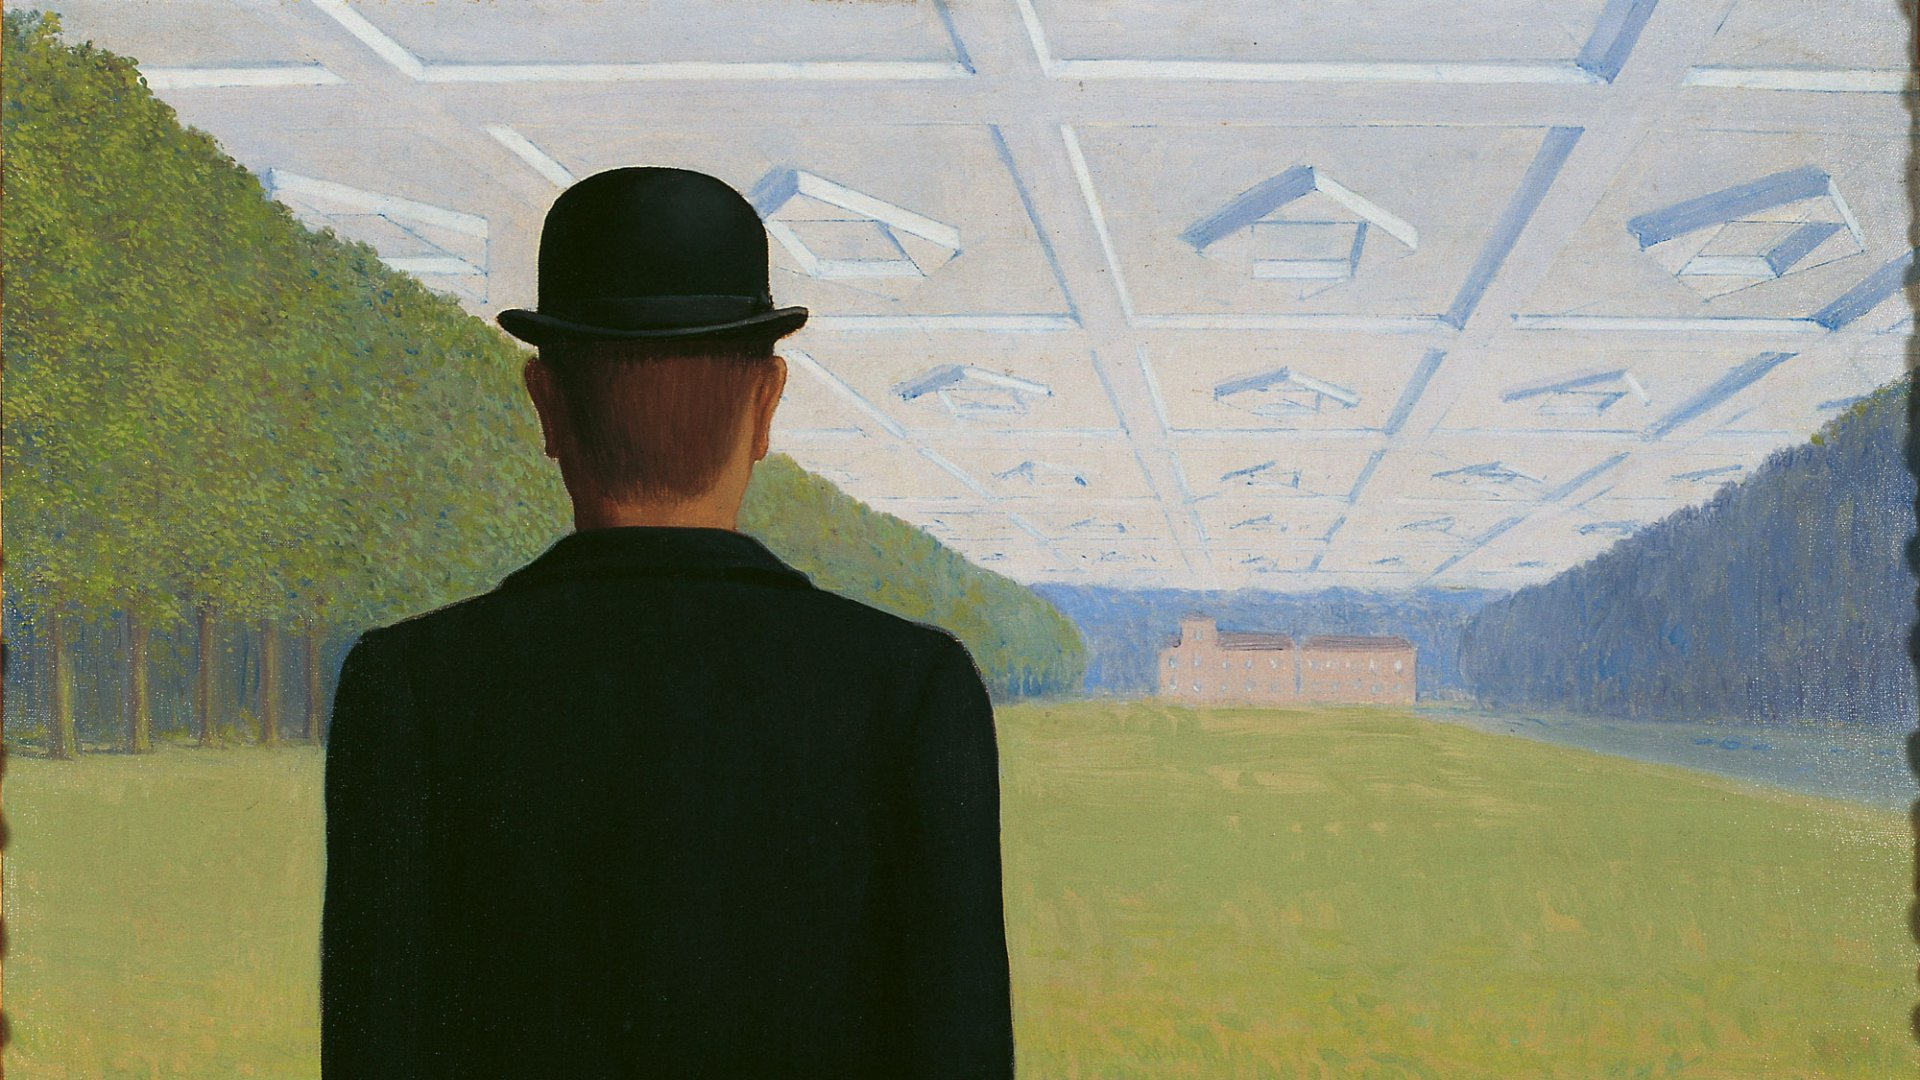 The Magritte machine